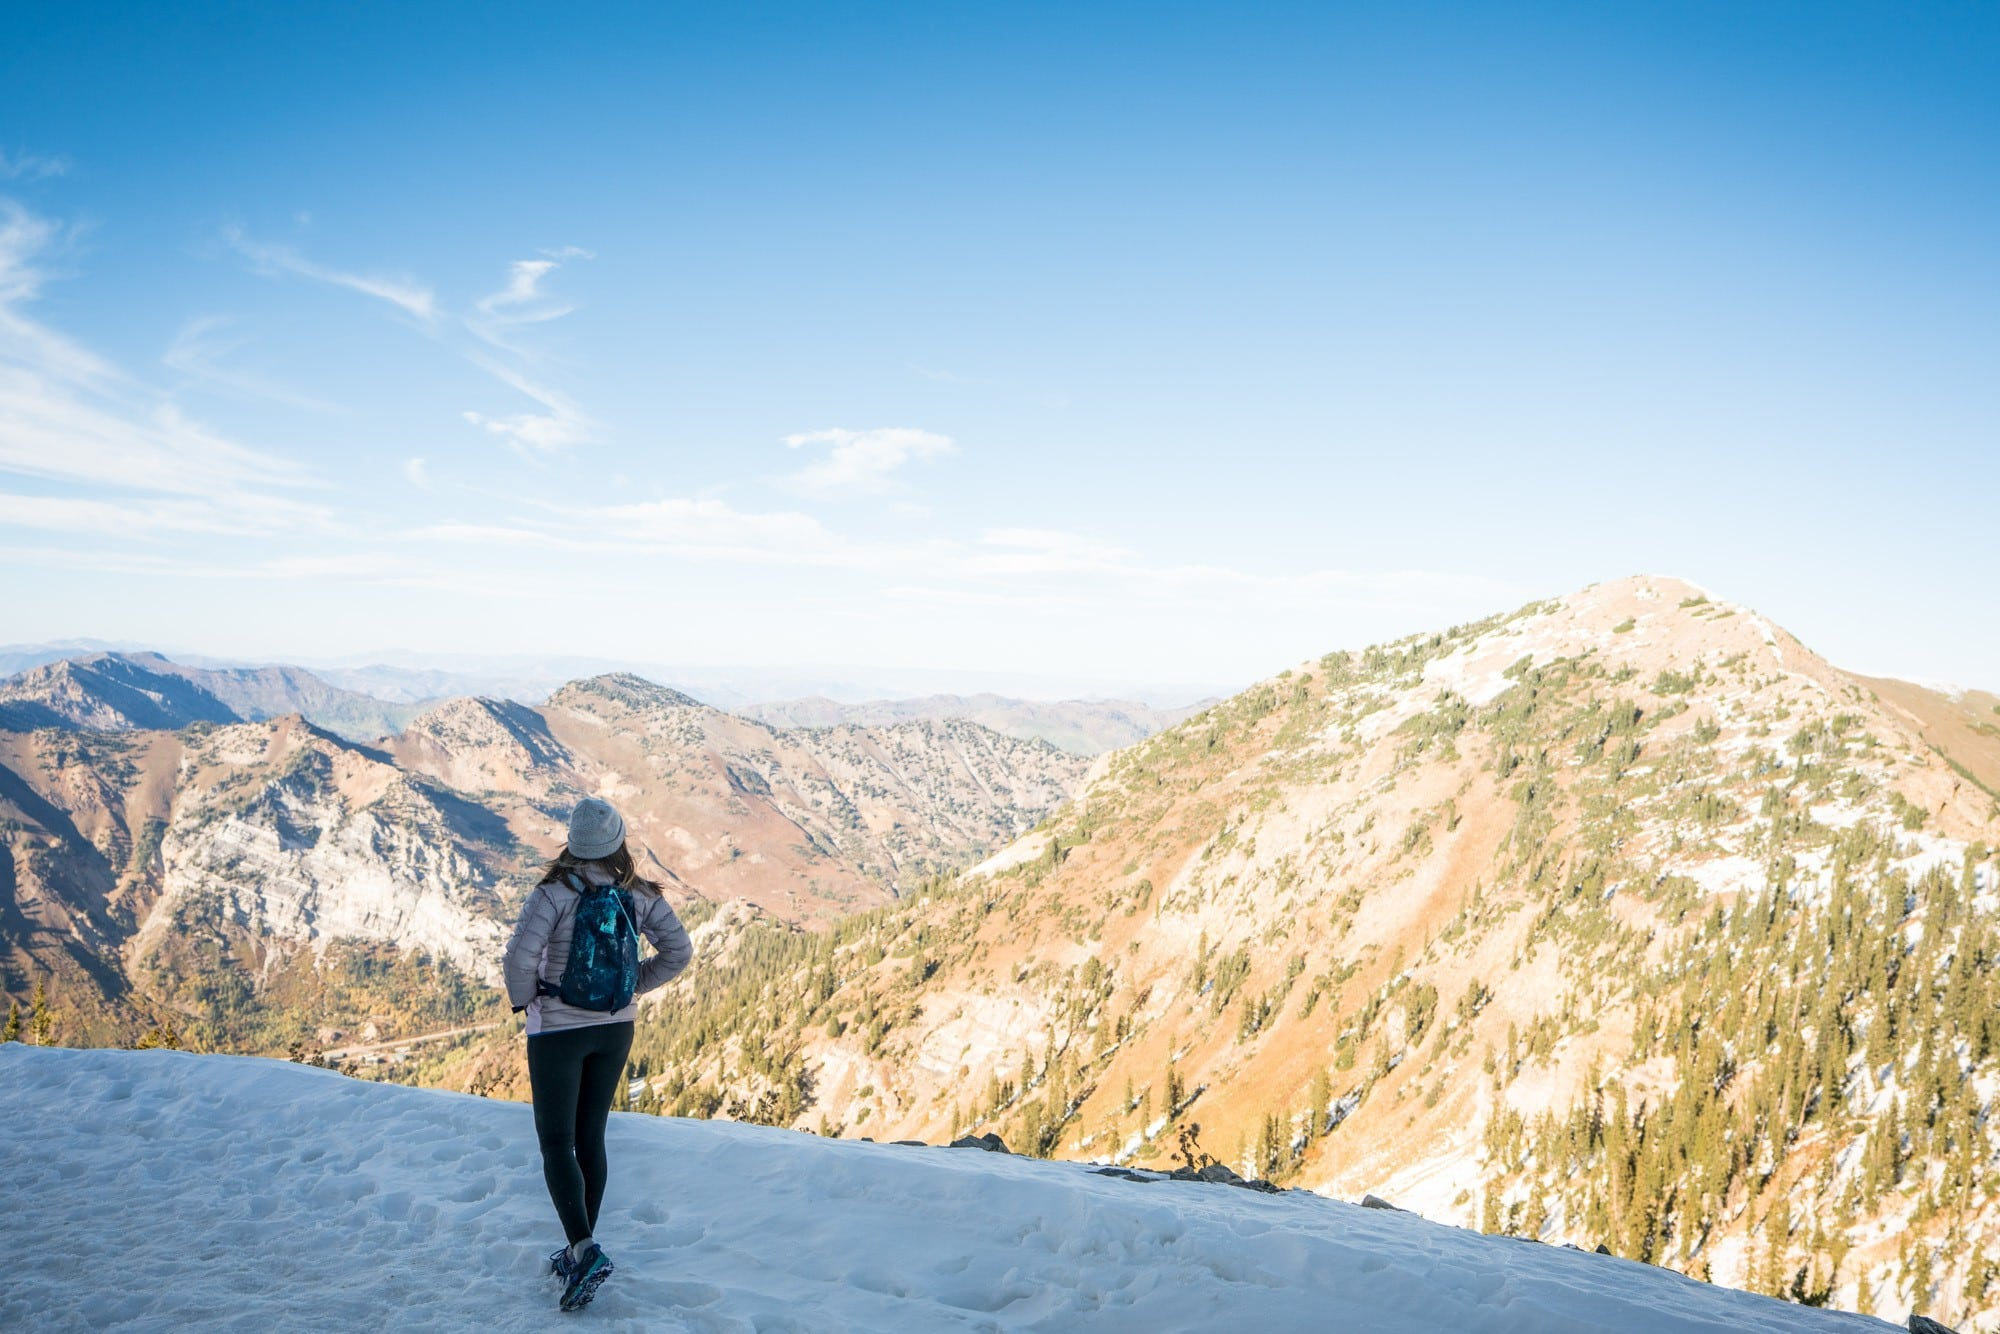 REI 18 Liter Flash Pack // Read my gear review of the best travel bags by REI that offer durability, smart design and function, while being priced lower than competing outdoor brands.